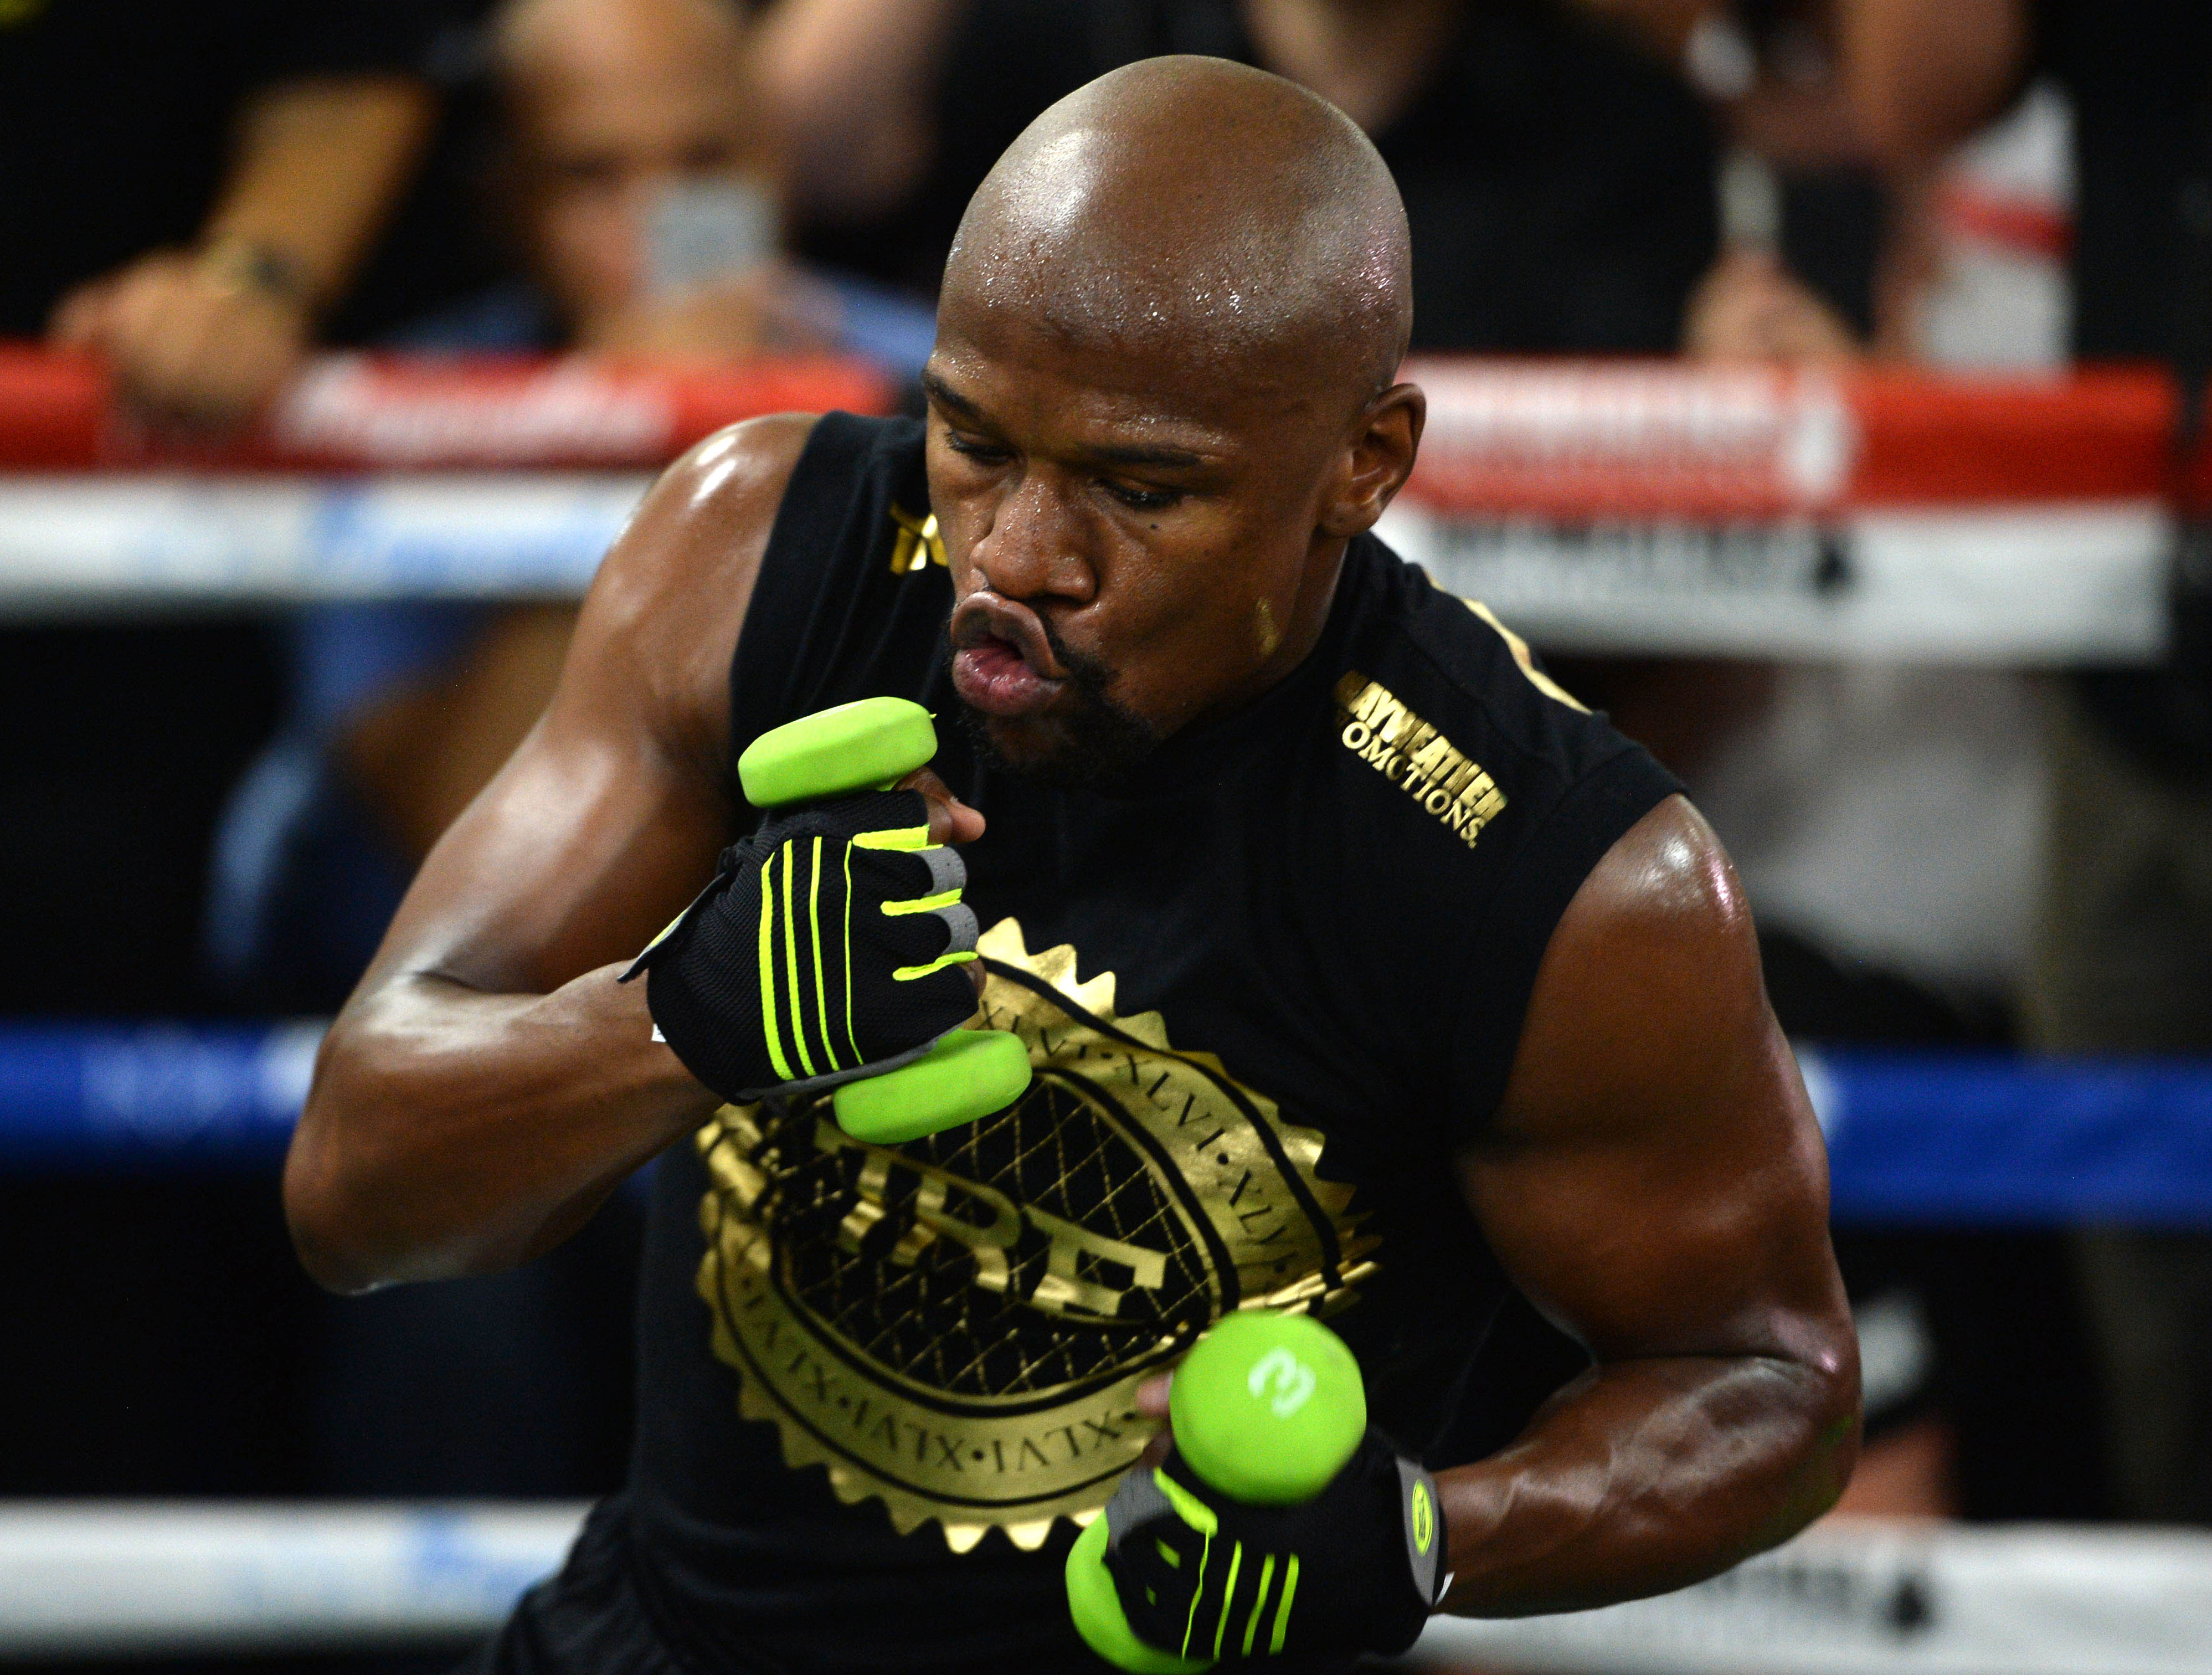 Rocky Marciano Jr. says Floyd Mayweather doesn't deserve record in an 'exhibition match'